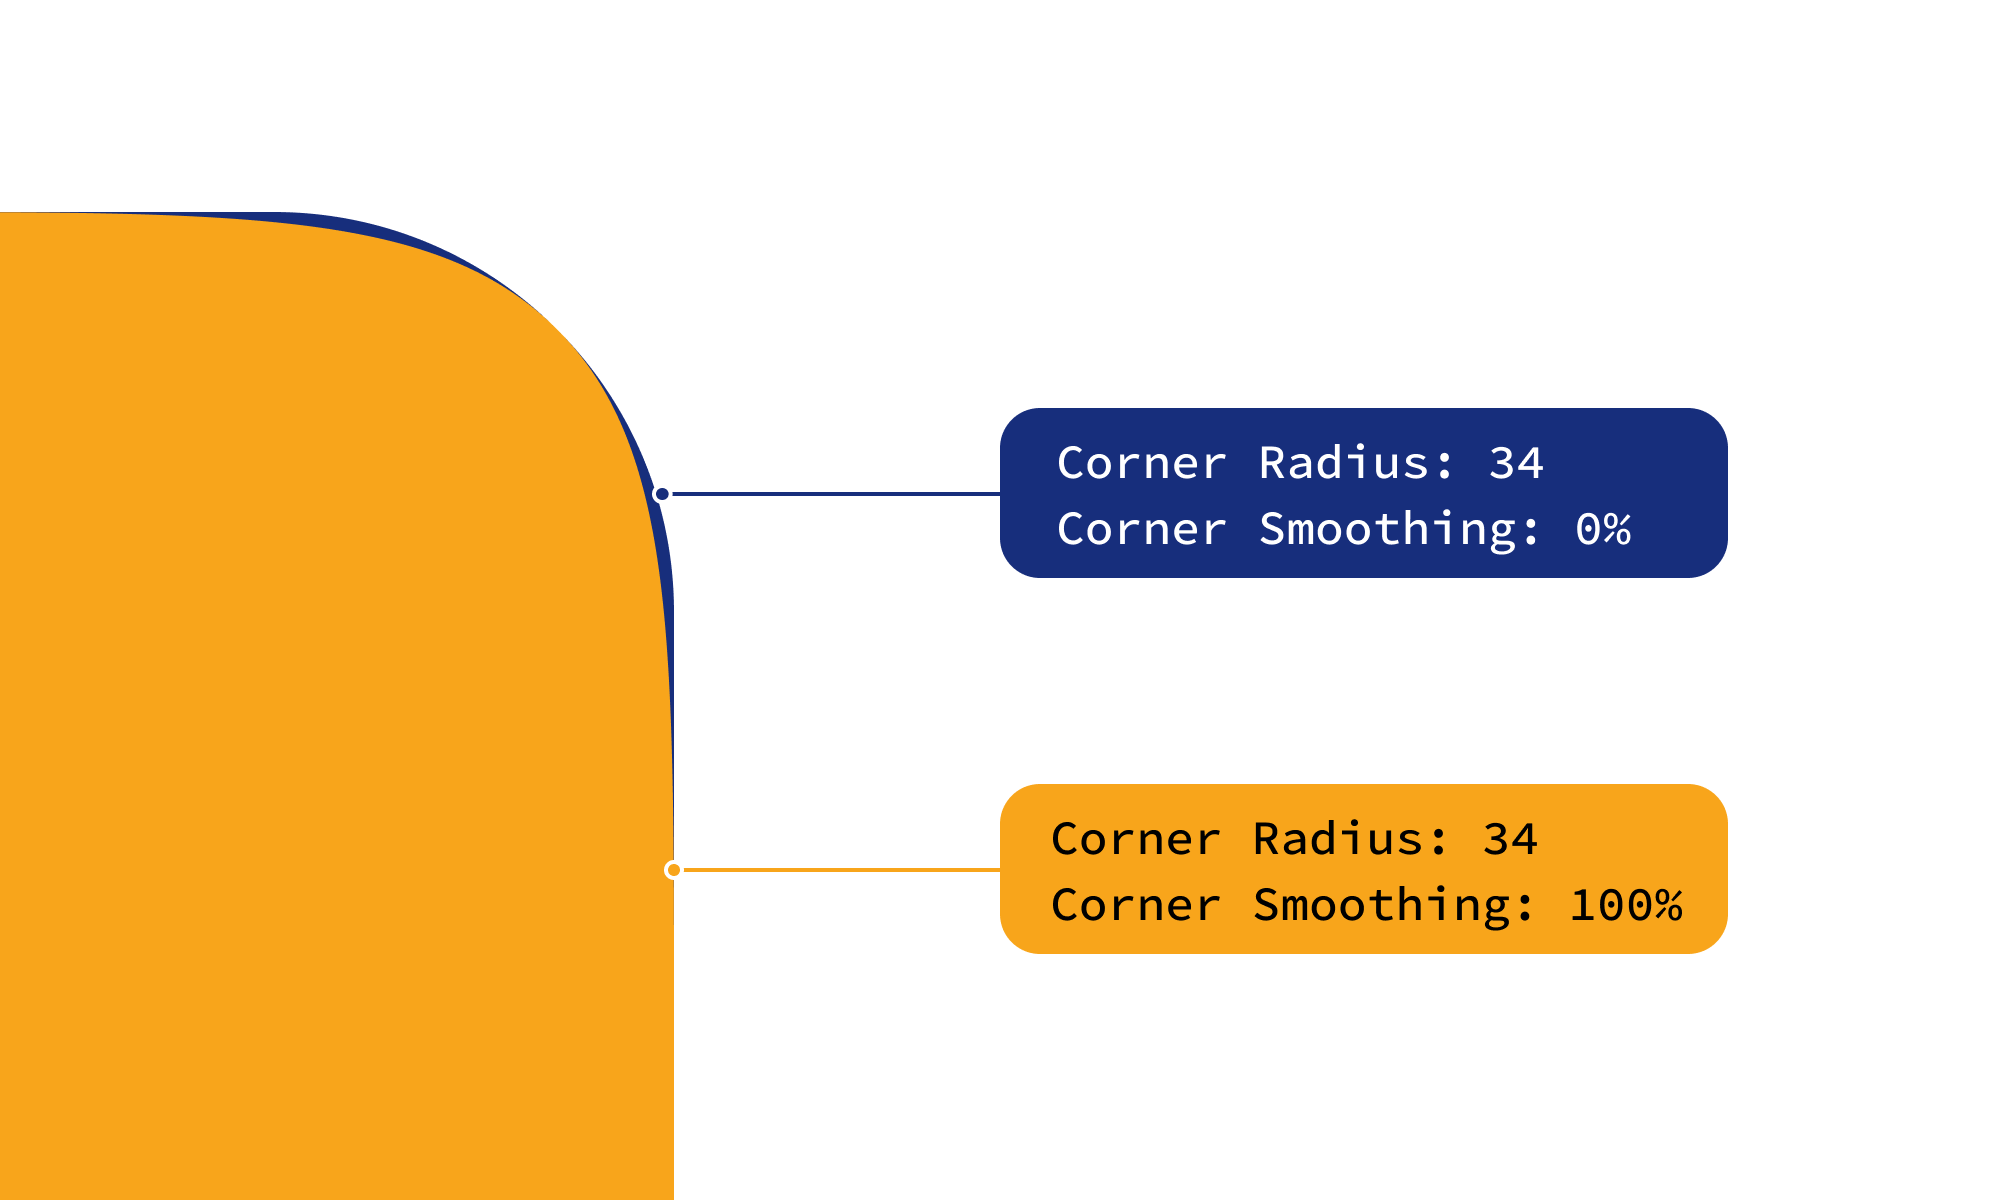 Overlay_showing_how_corner_smoothing_affects_corner_radius__2_.png